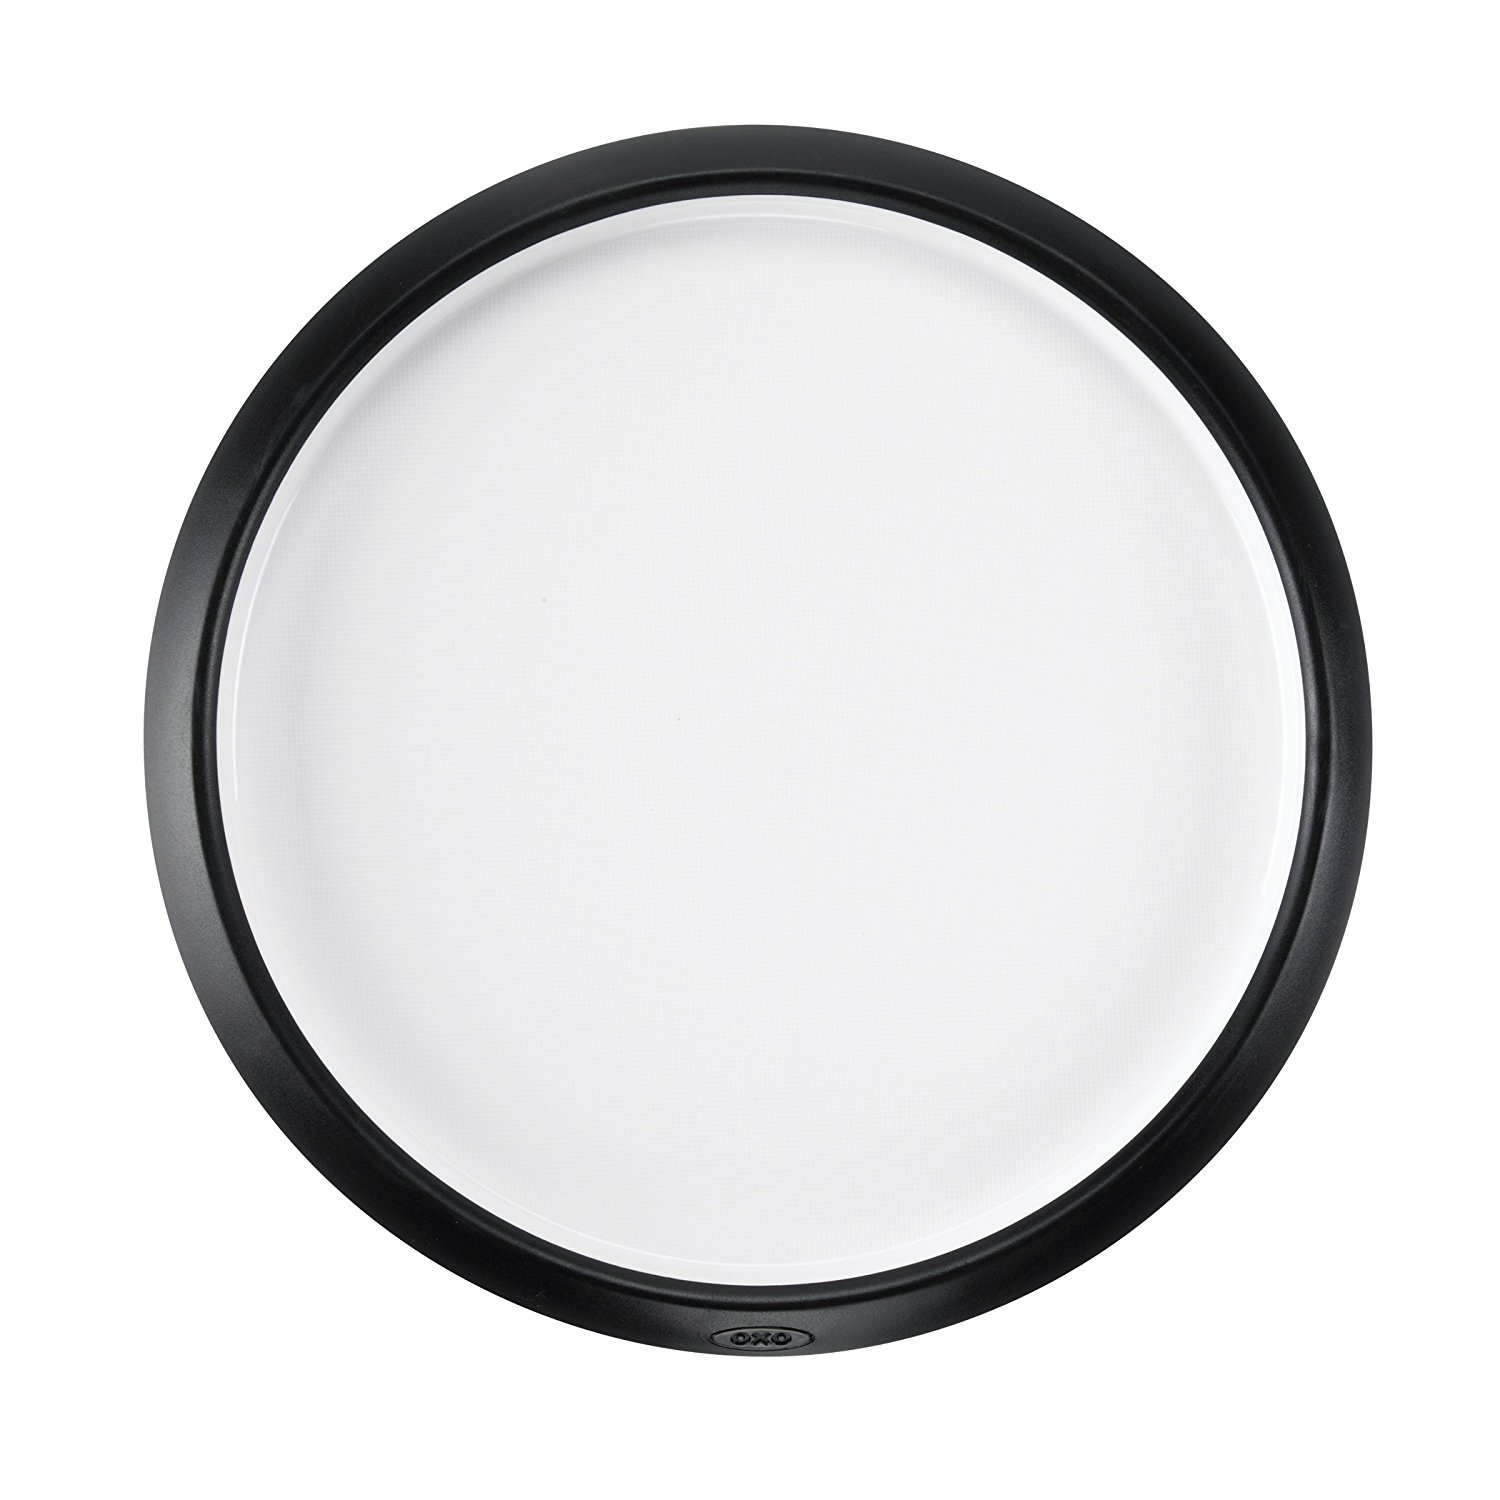 Good Grips Lazy Susan Turntable, 11 Inch, Madesmart NonSkid Motorized  Jewelry Rotating Dish